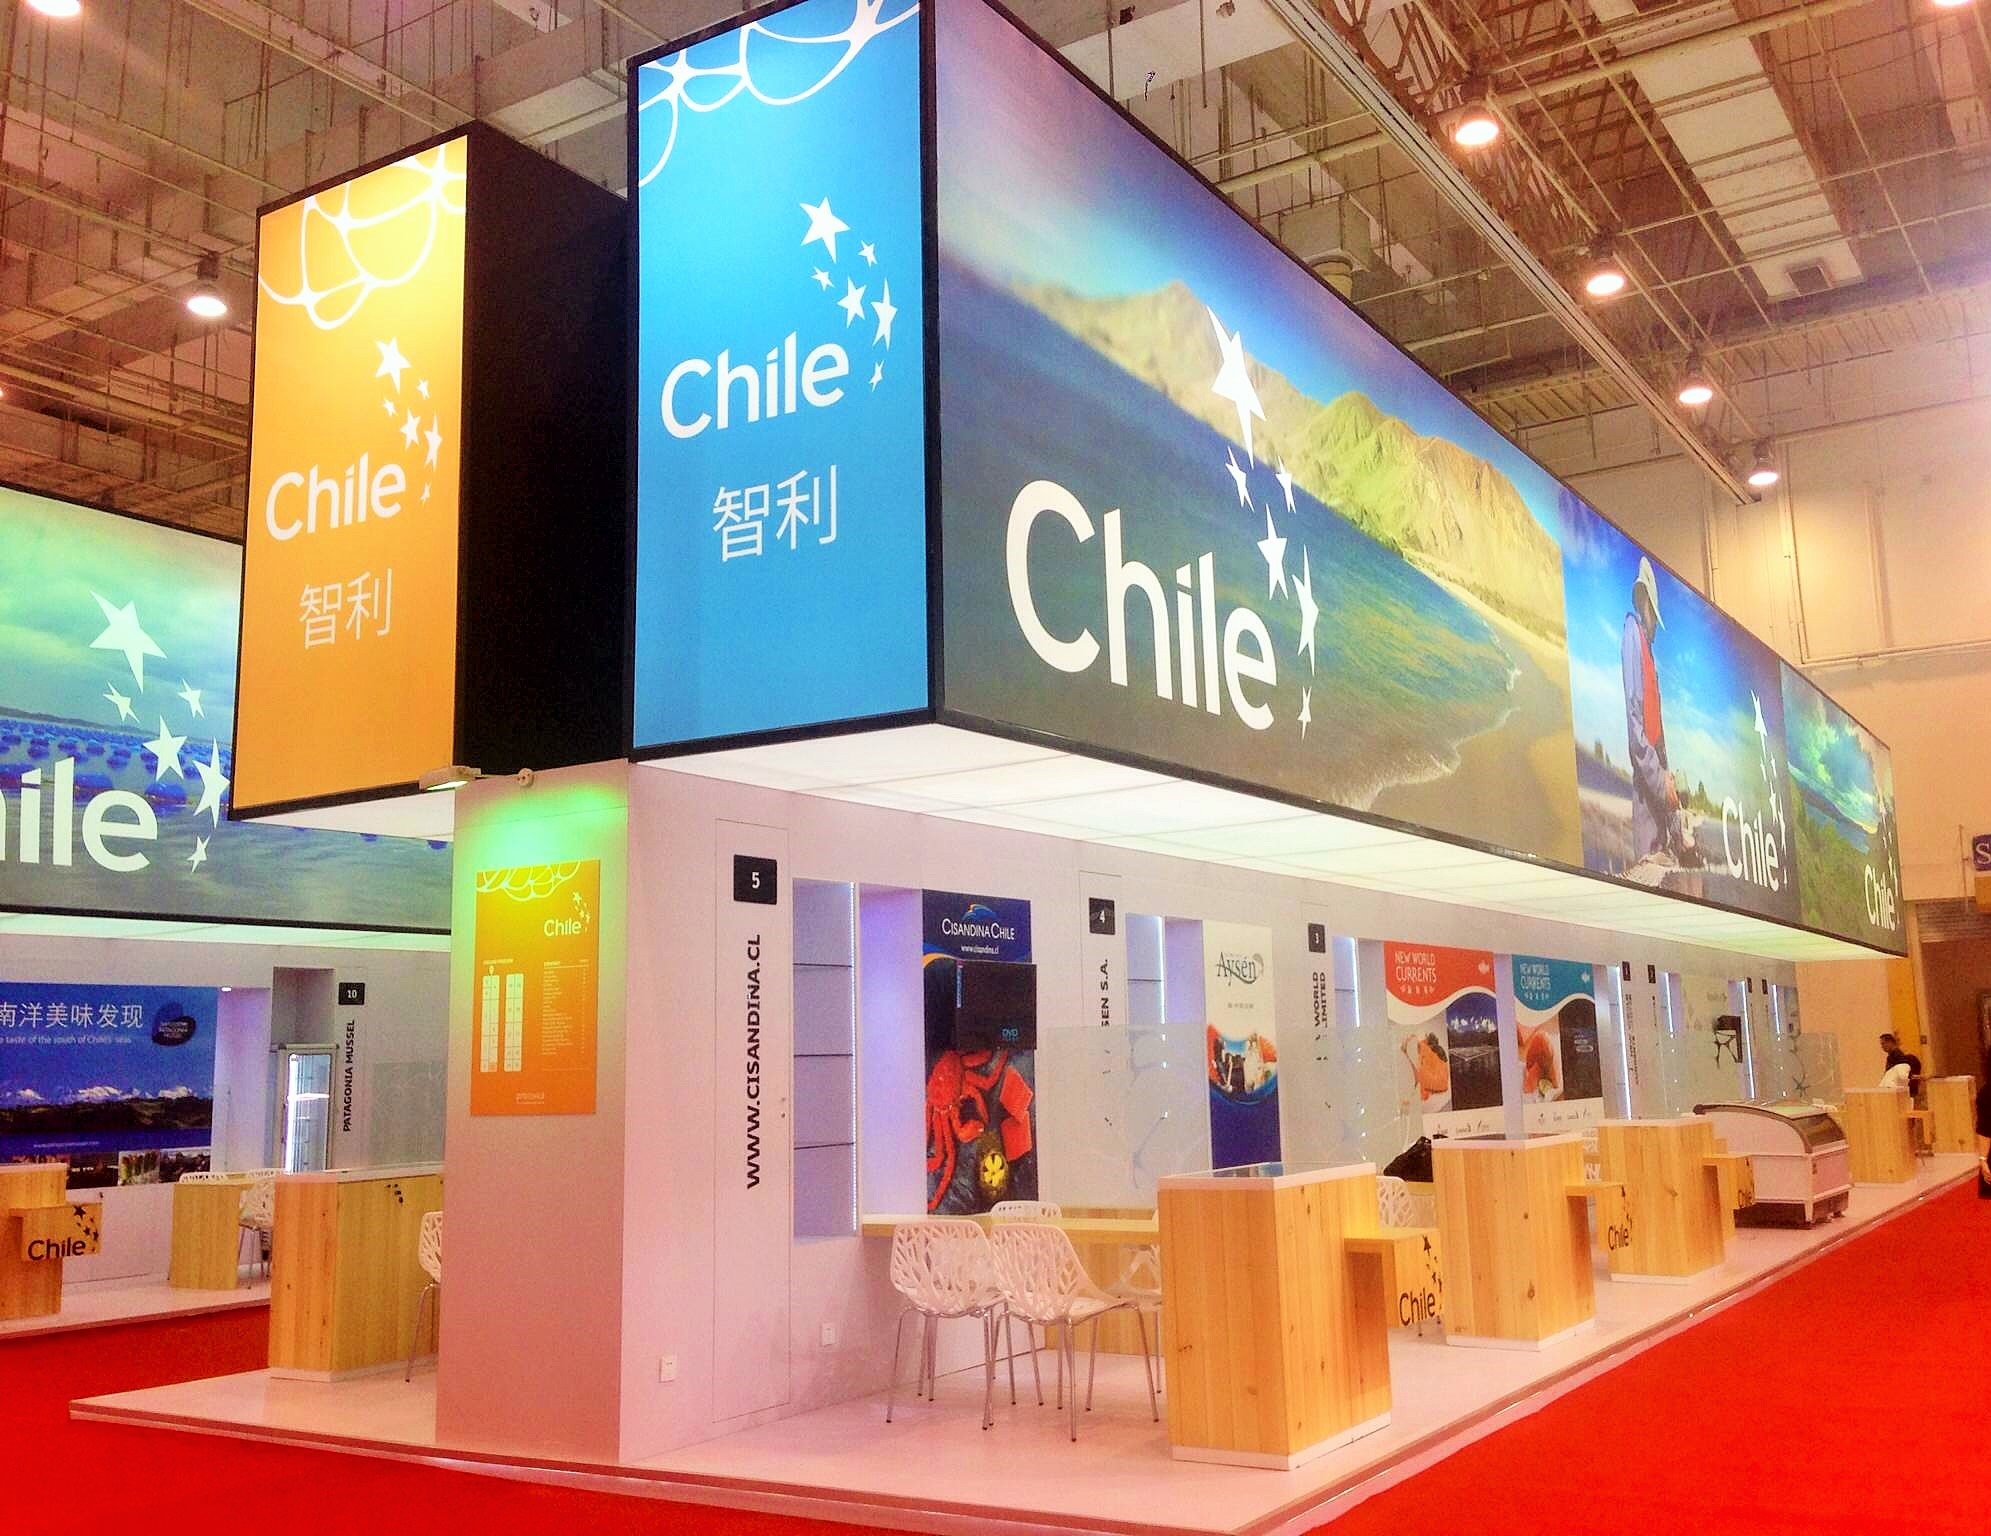 Qing Dao Chile exhibition booth